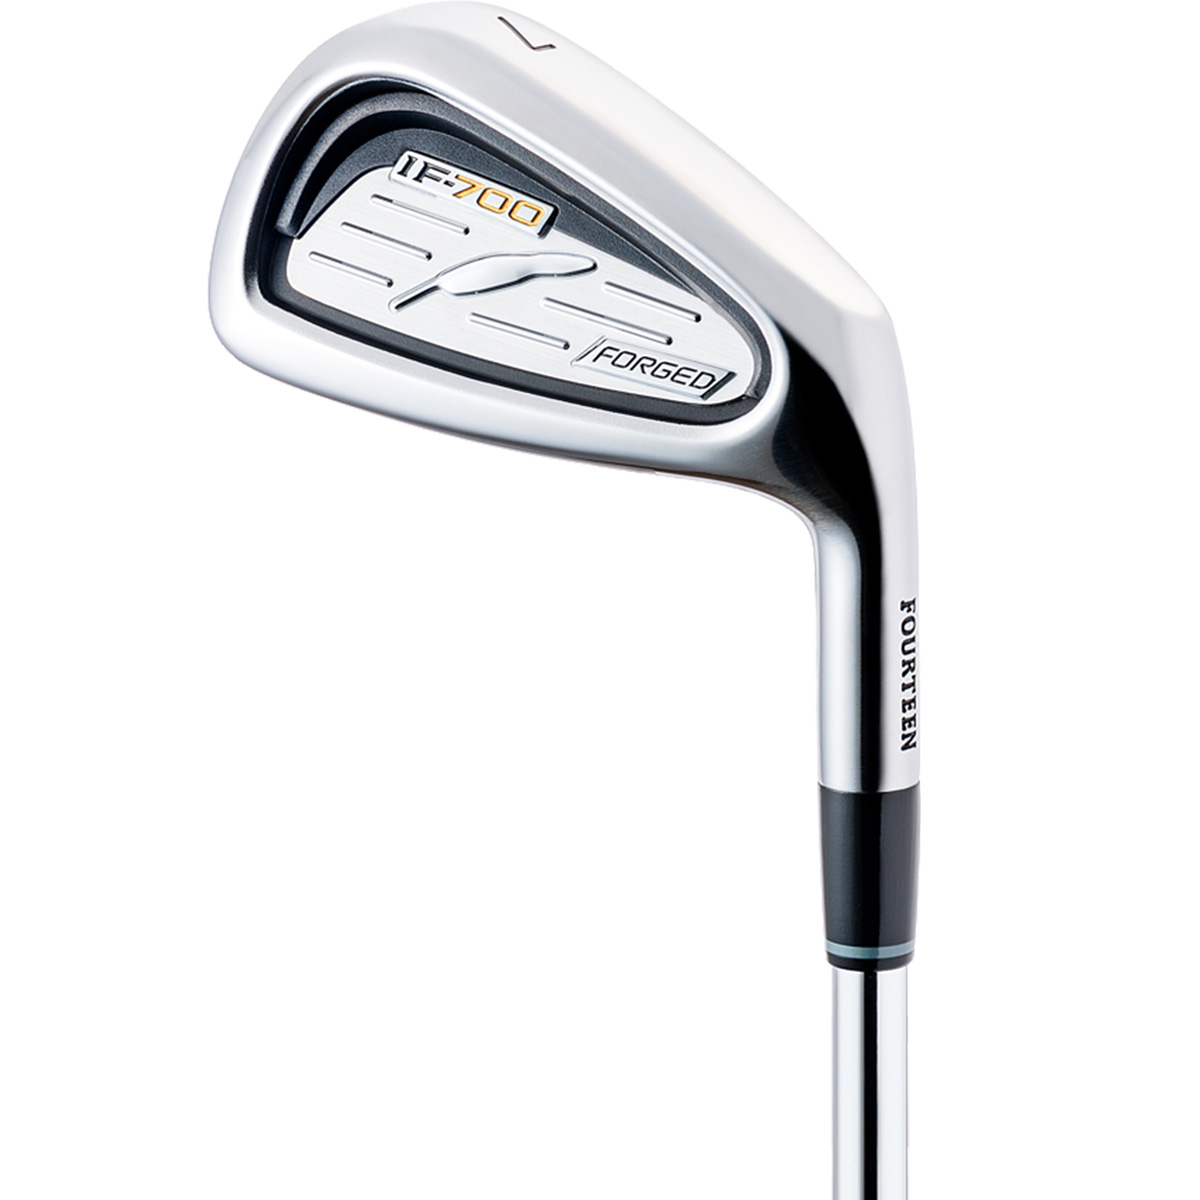 IF-700 FORGED アイアン(5本セット) N.S.PRO MODUS3 SYSTEM3 TOUR 125納期:受注後約5週間